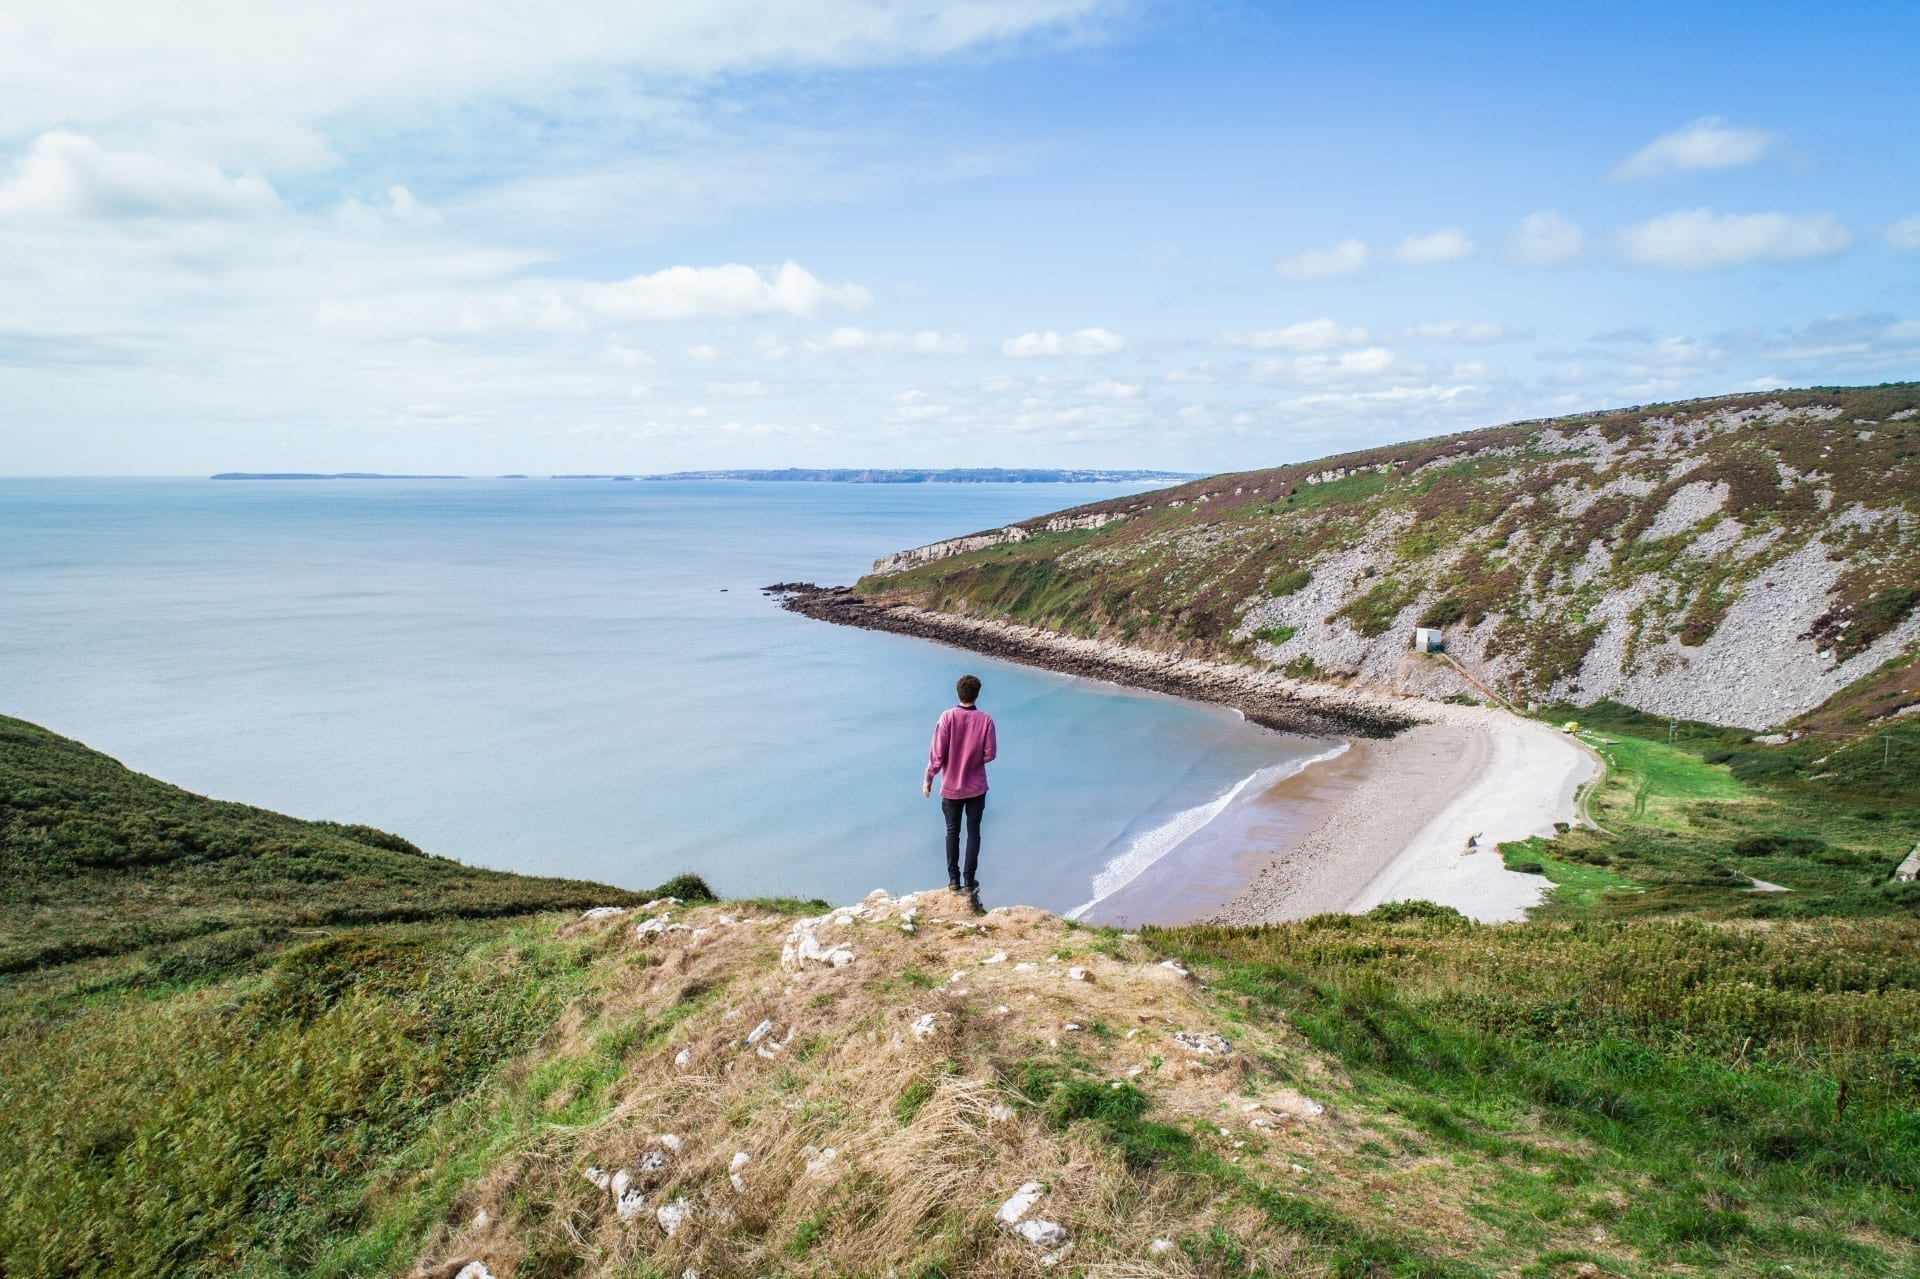 man standing on a cliff overlooking a beach cove in Wales